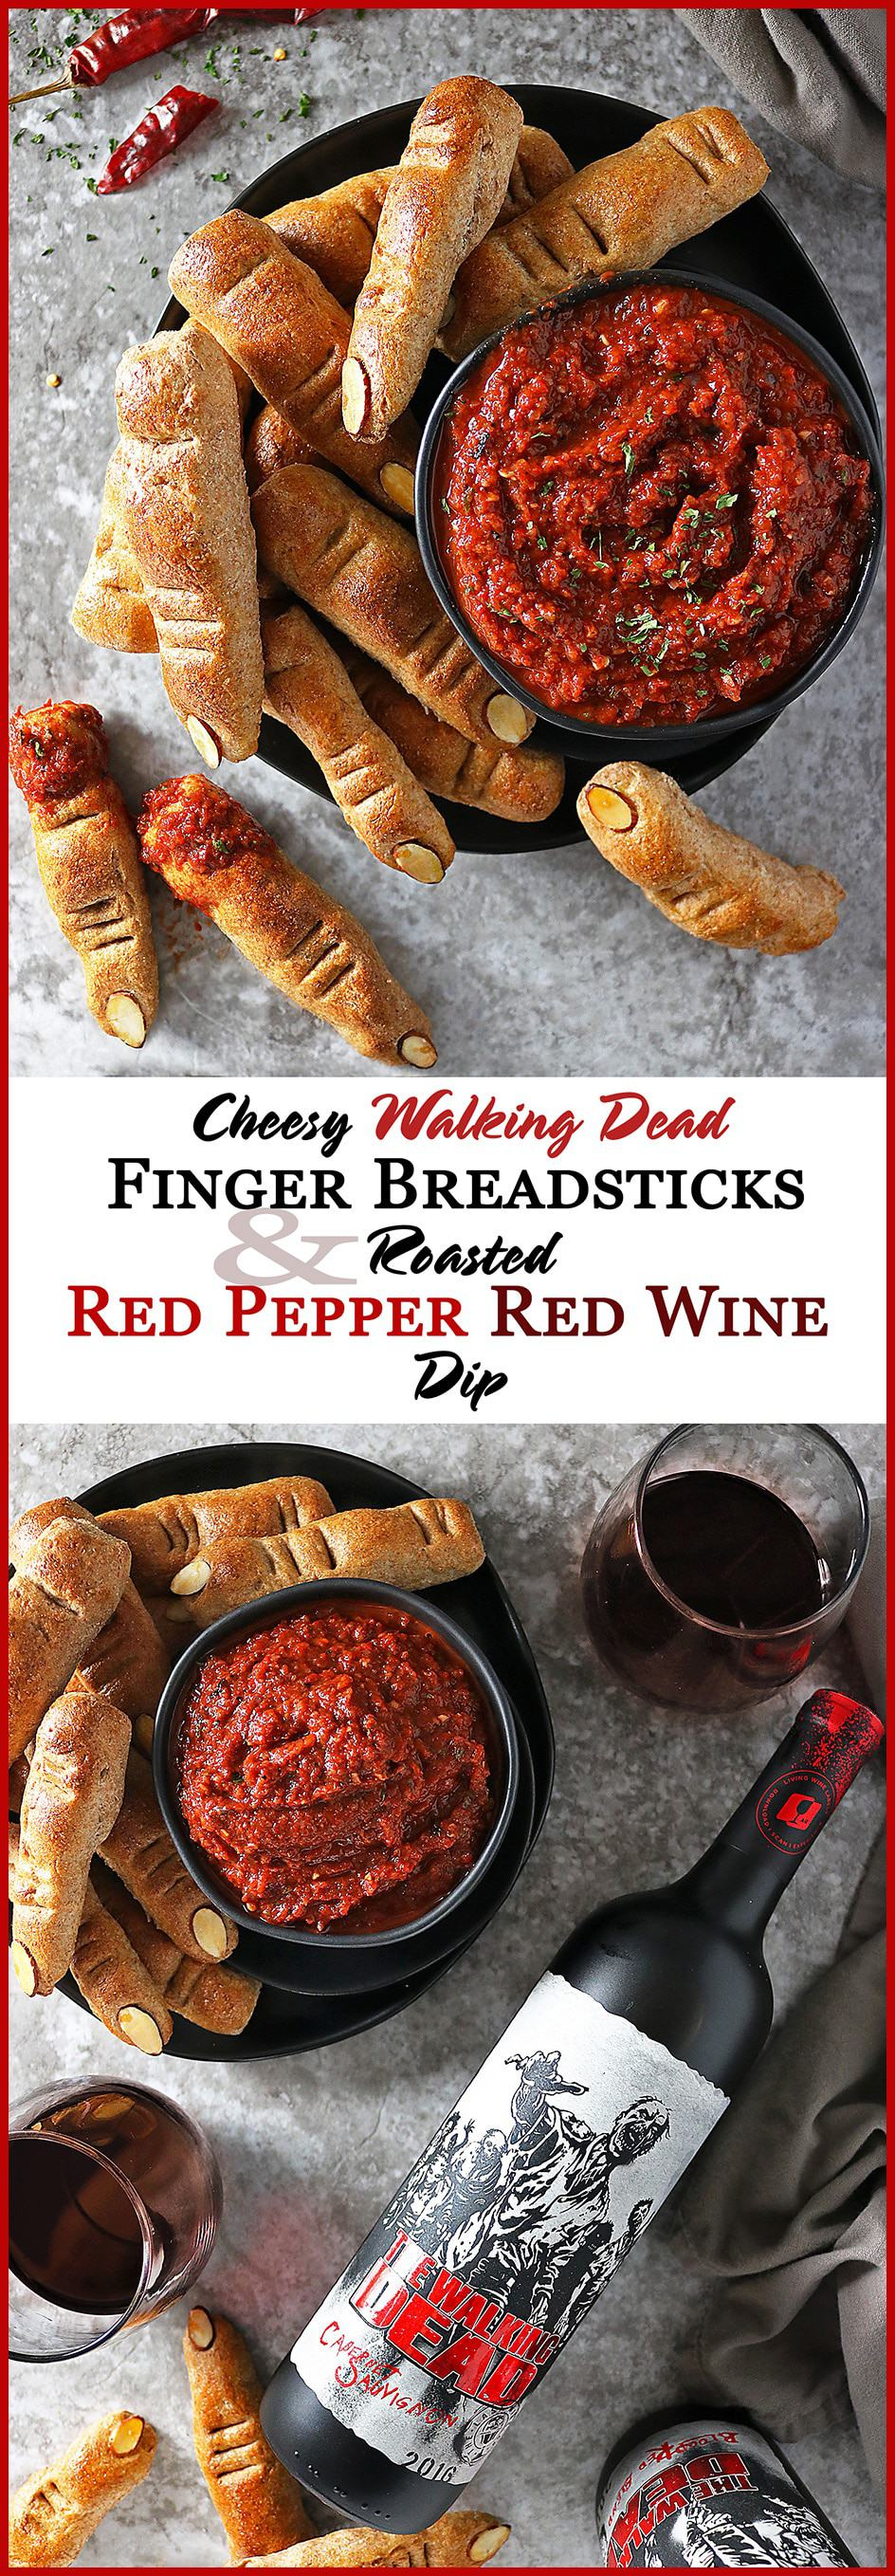 Cheesy Whole Wheat Finger Breadsticks And Roasted Red Pepper Red Wine Dip #ad #UncorkTheStory